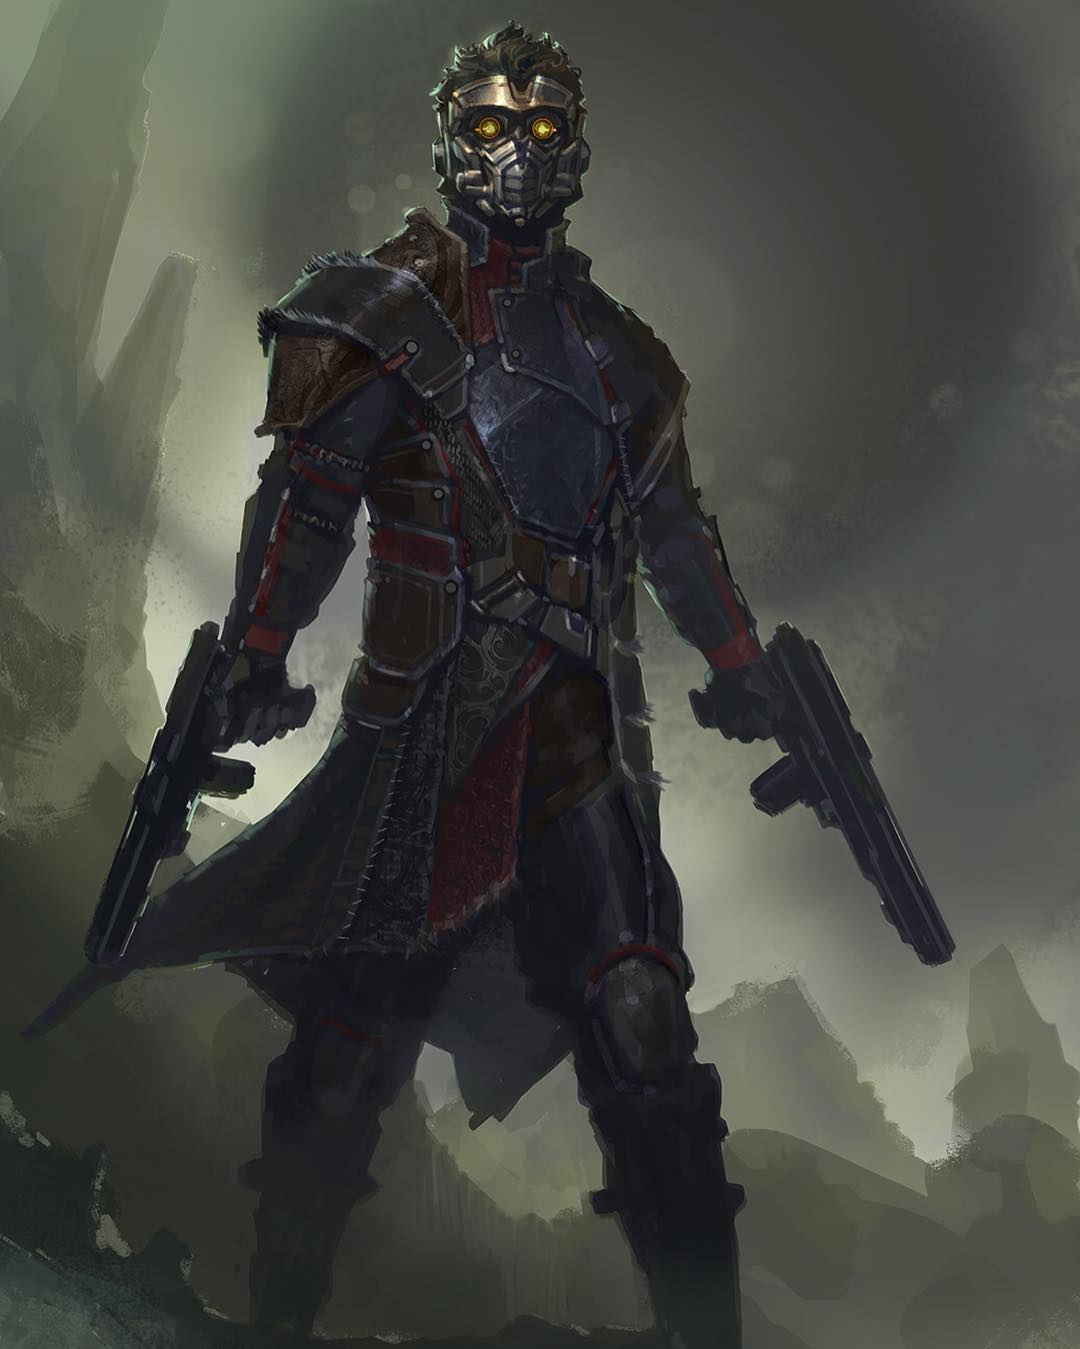 New Guardians Of The Galaxy Concept Art Shows Off Some Alternate Star-Lord Designs